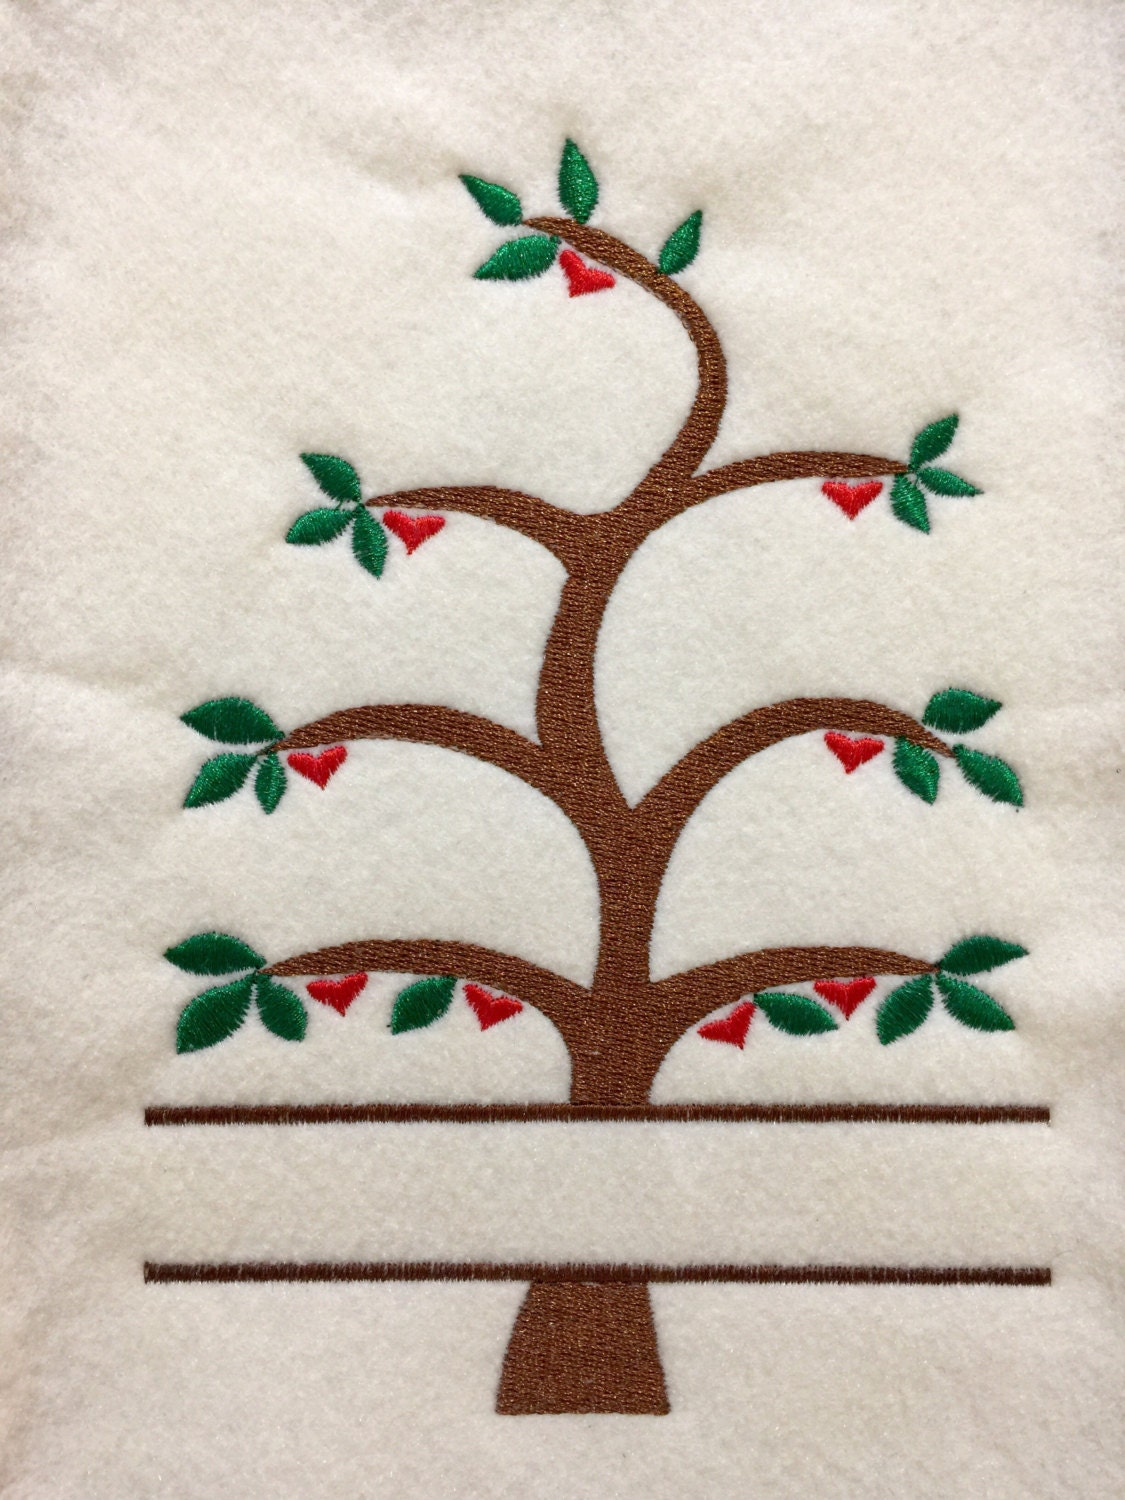 Family Tree And Heart Wall Art Pattern Embroidery Design